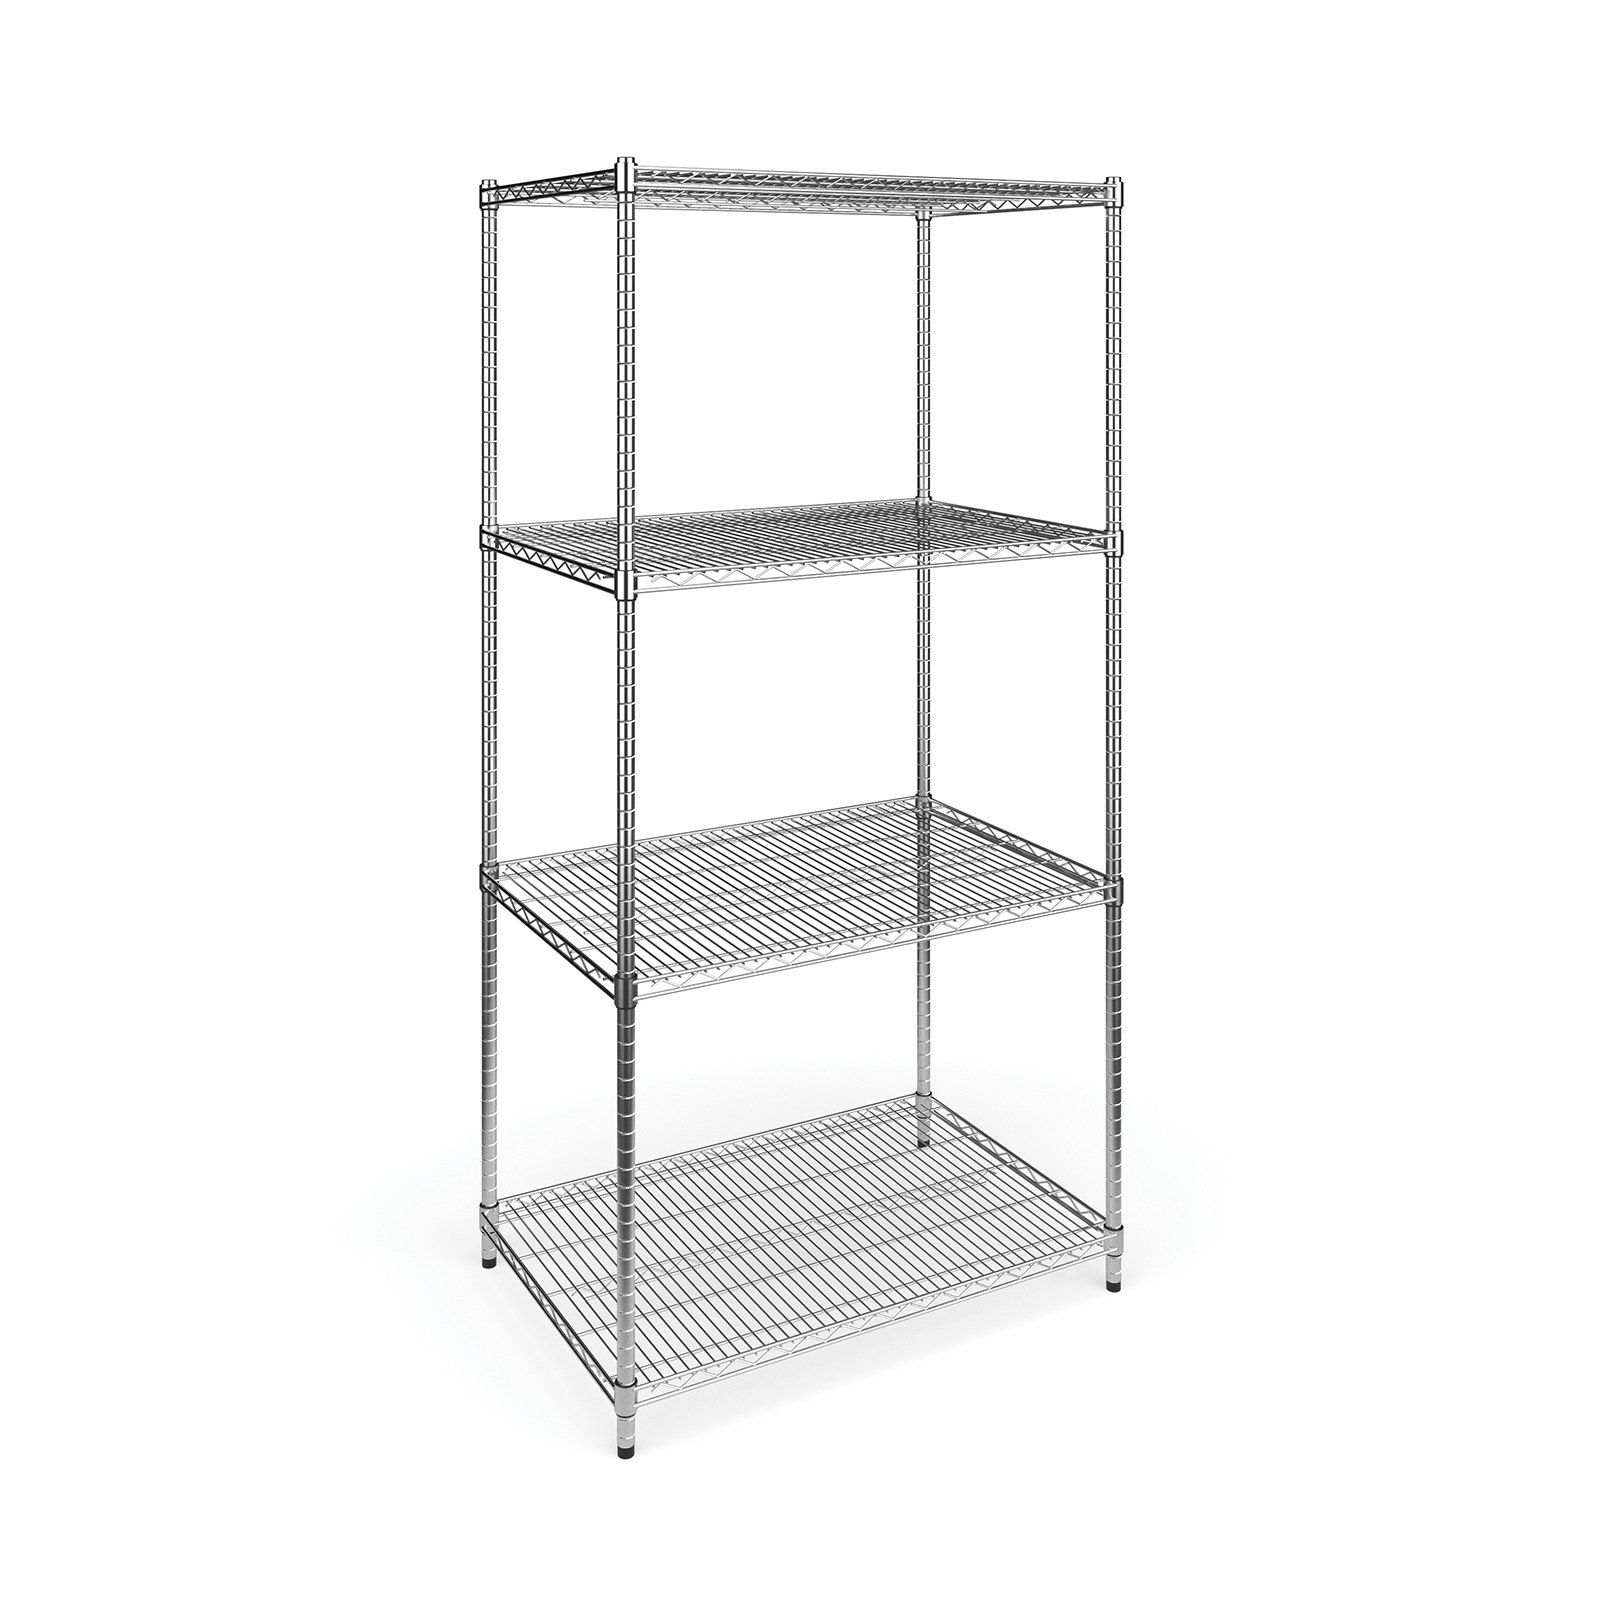 Ofm Model X5r Four Shelf Office Garage Storage Rack Wire Shelving Garage Storage Racks Shelves